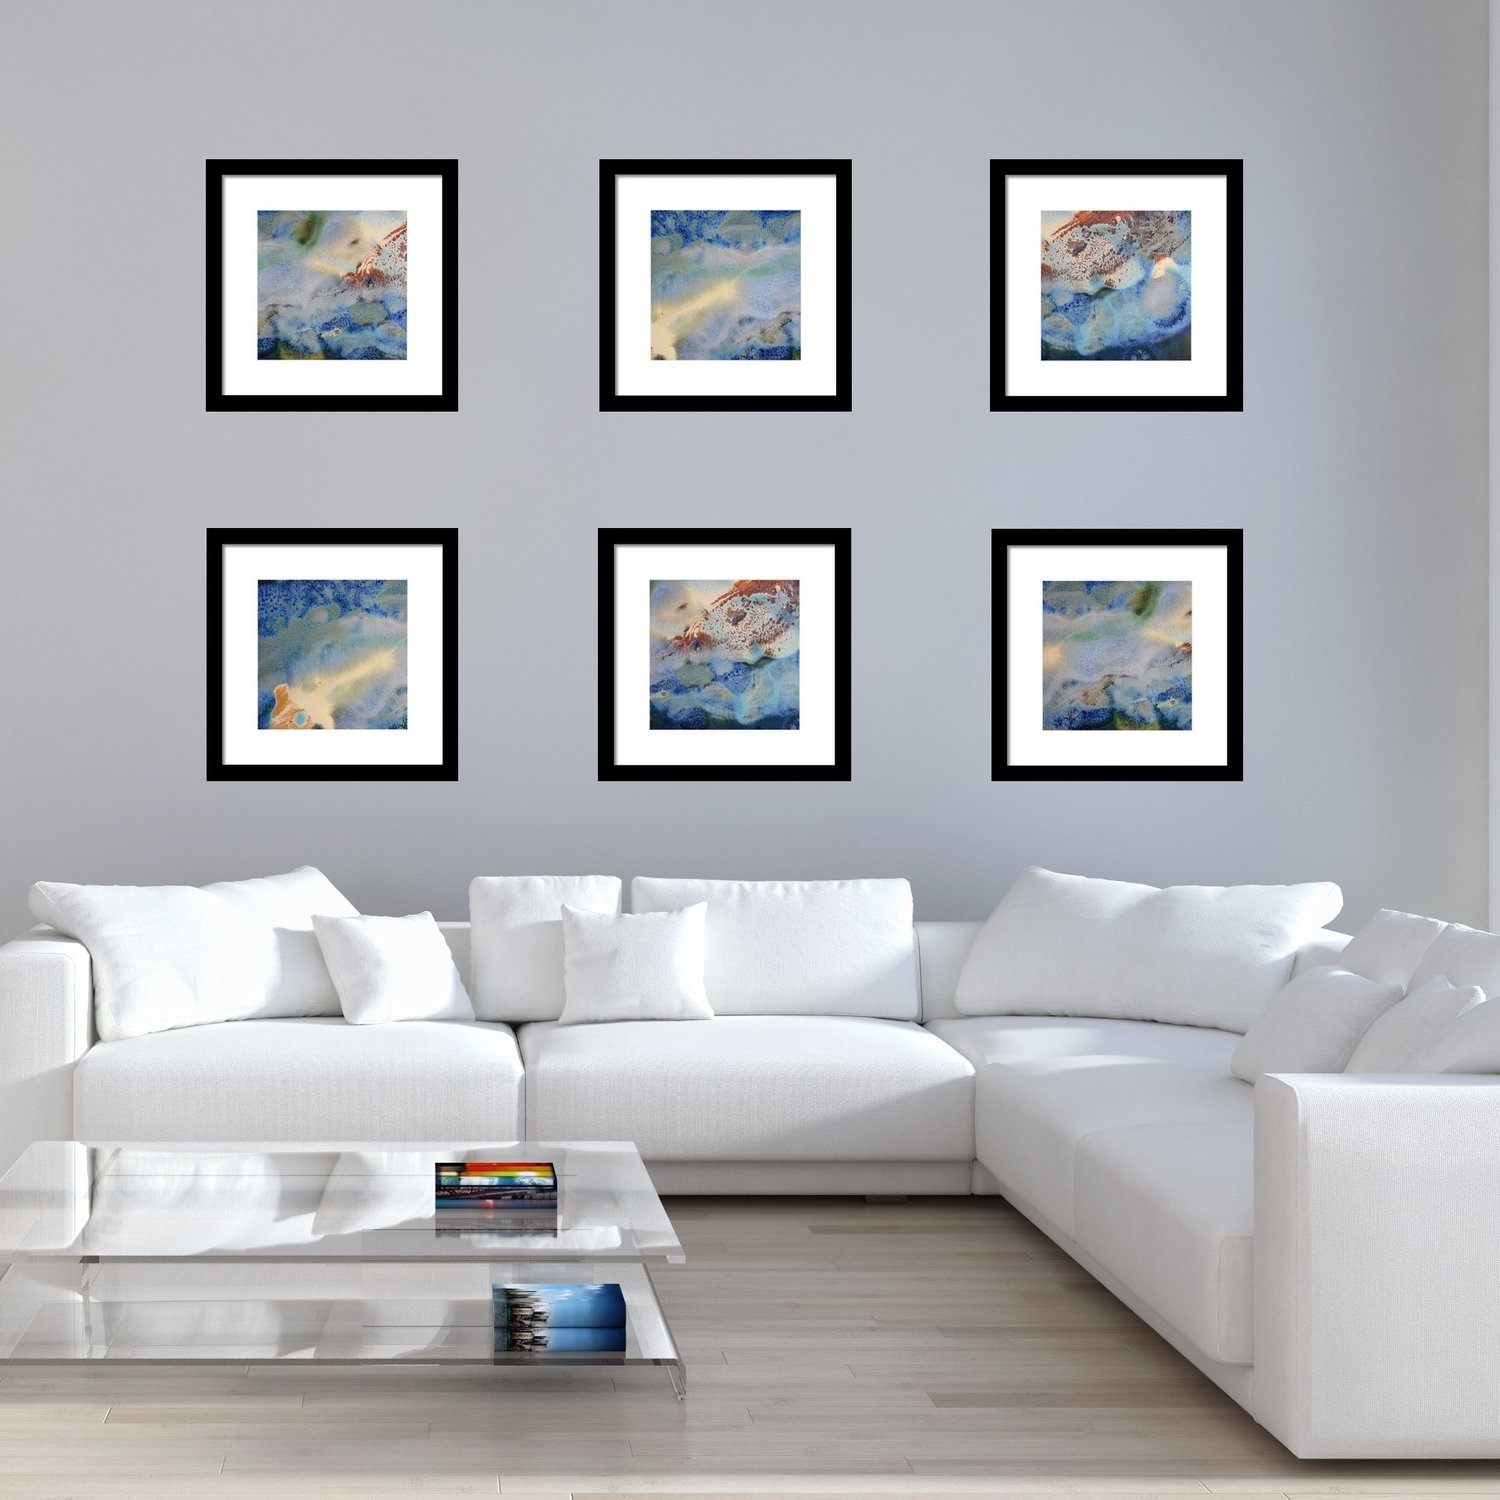 Set Of 6 Abstract Framed Prints – Square #17, 18 & 19 | White With Regard To 2017 Framed Beach Art Prints (Gallery 6 of 15)